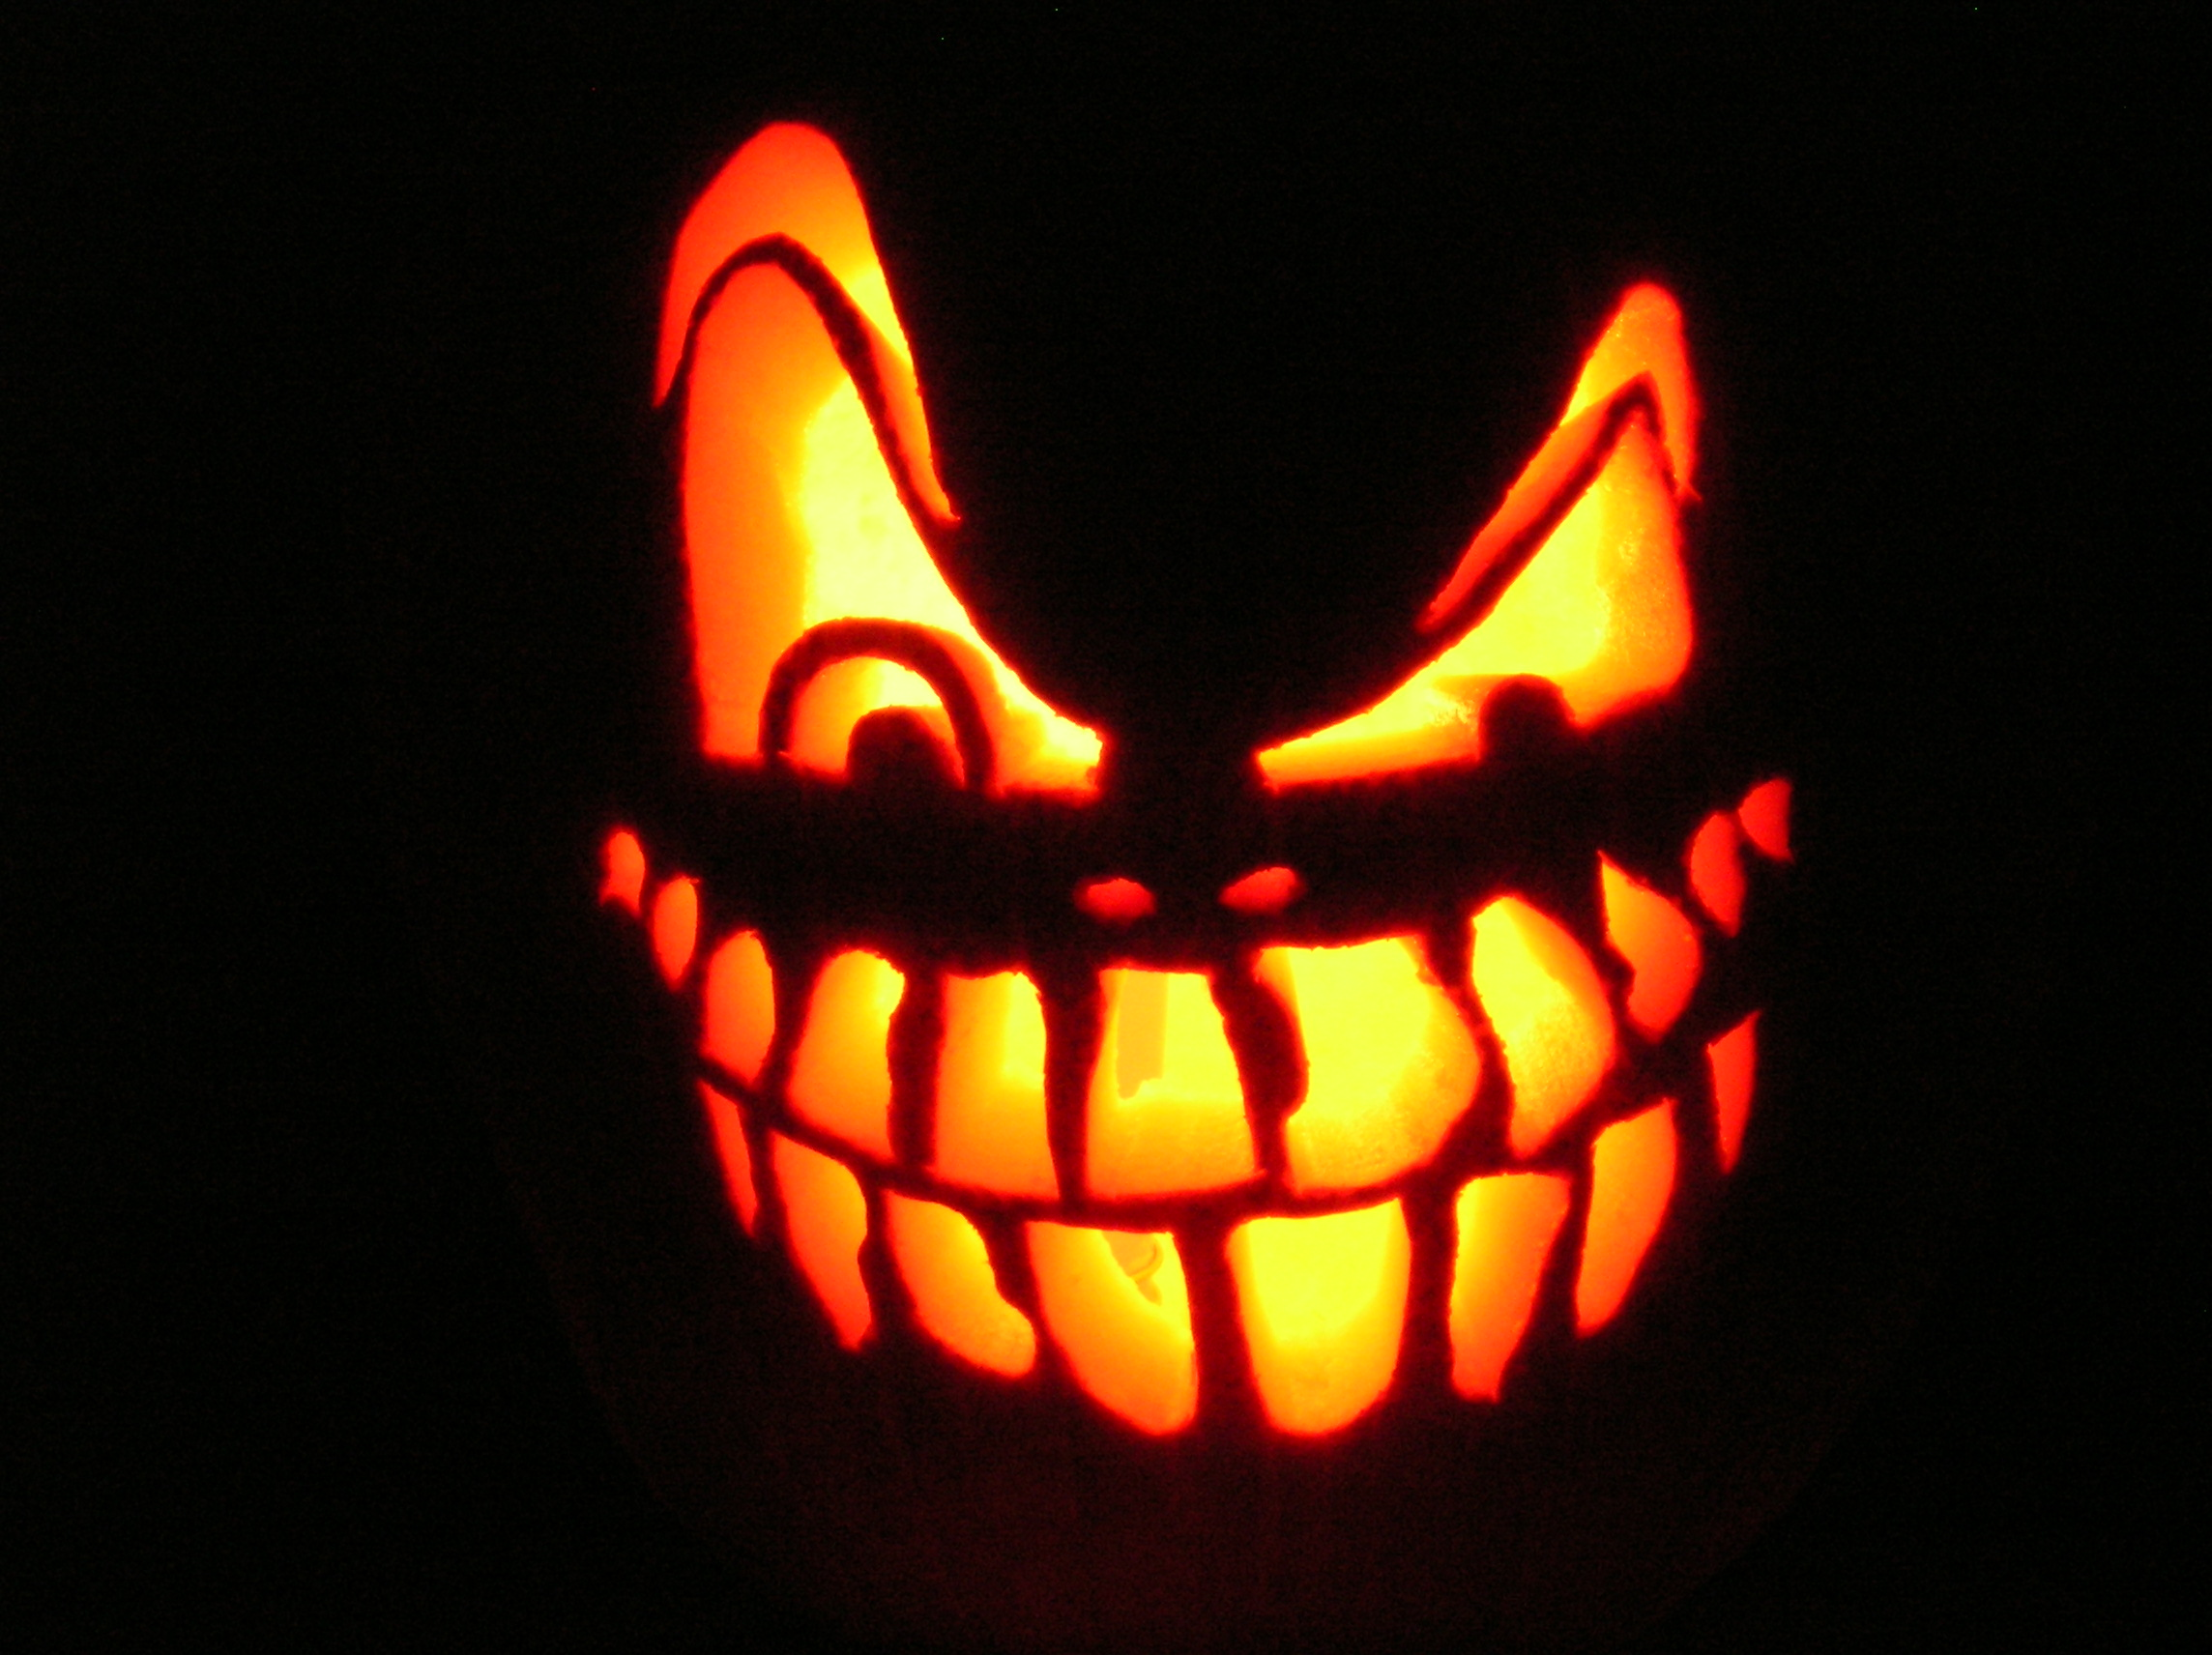 File:Happy Halloween!.jpg - Wikipedia